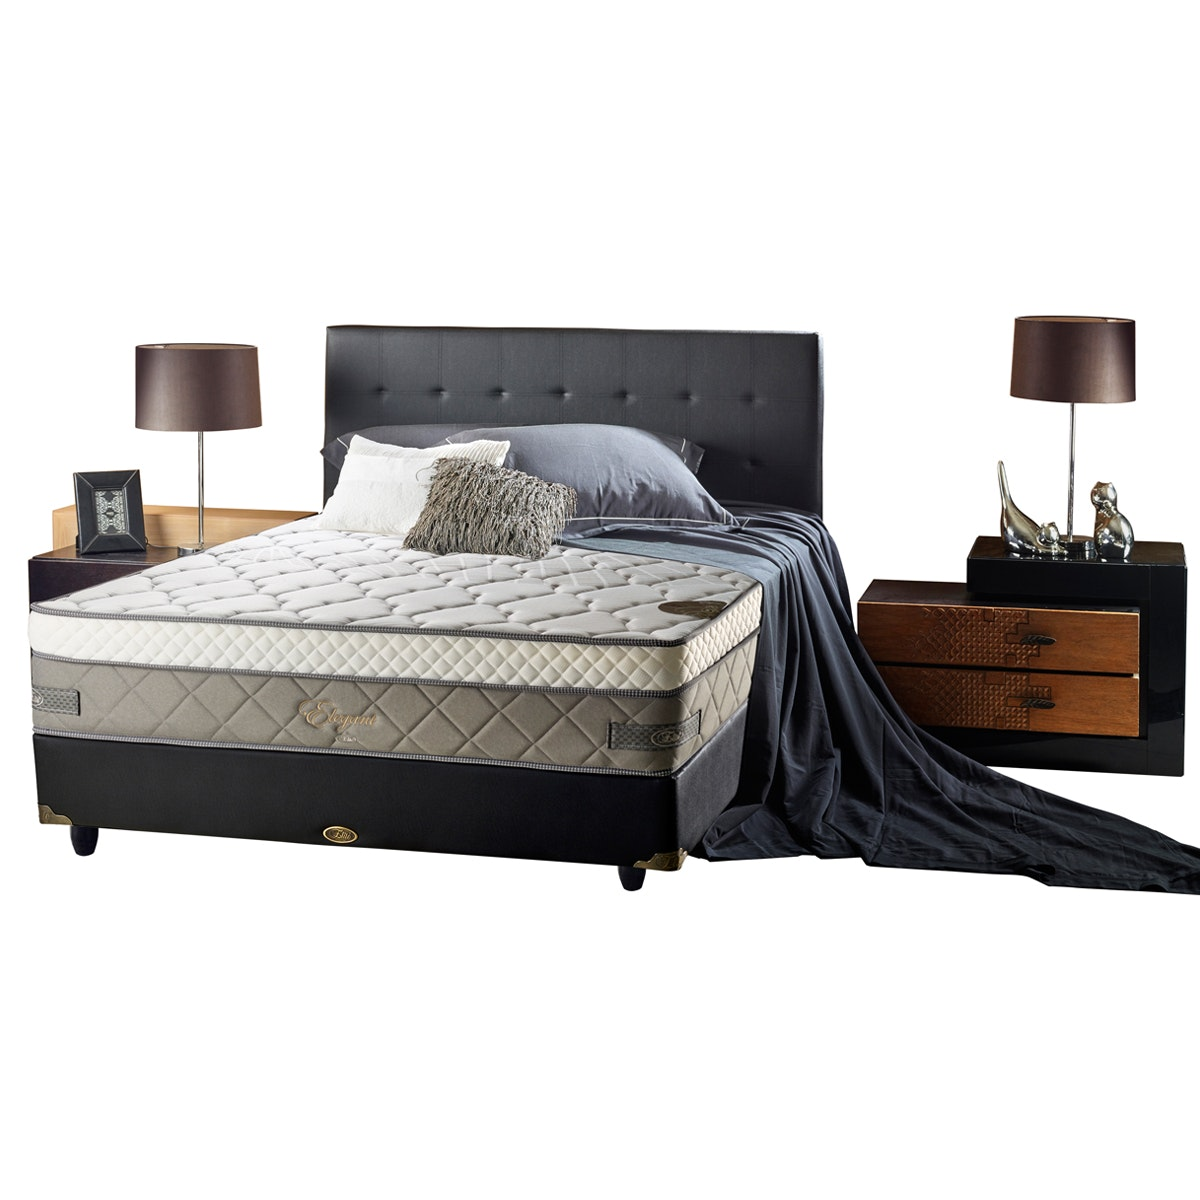 fr topper 120x200 matratzen with fr topper 120x200 fur inspiration topper with fr topper. Black Bedroom Furniture Sets. Home Design Ideas